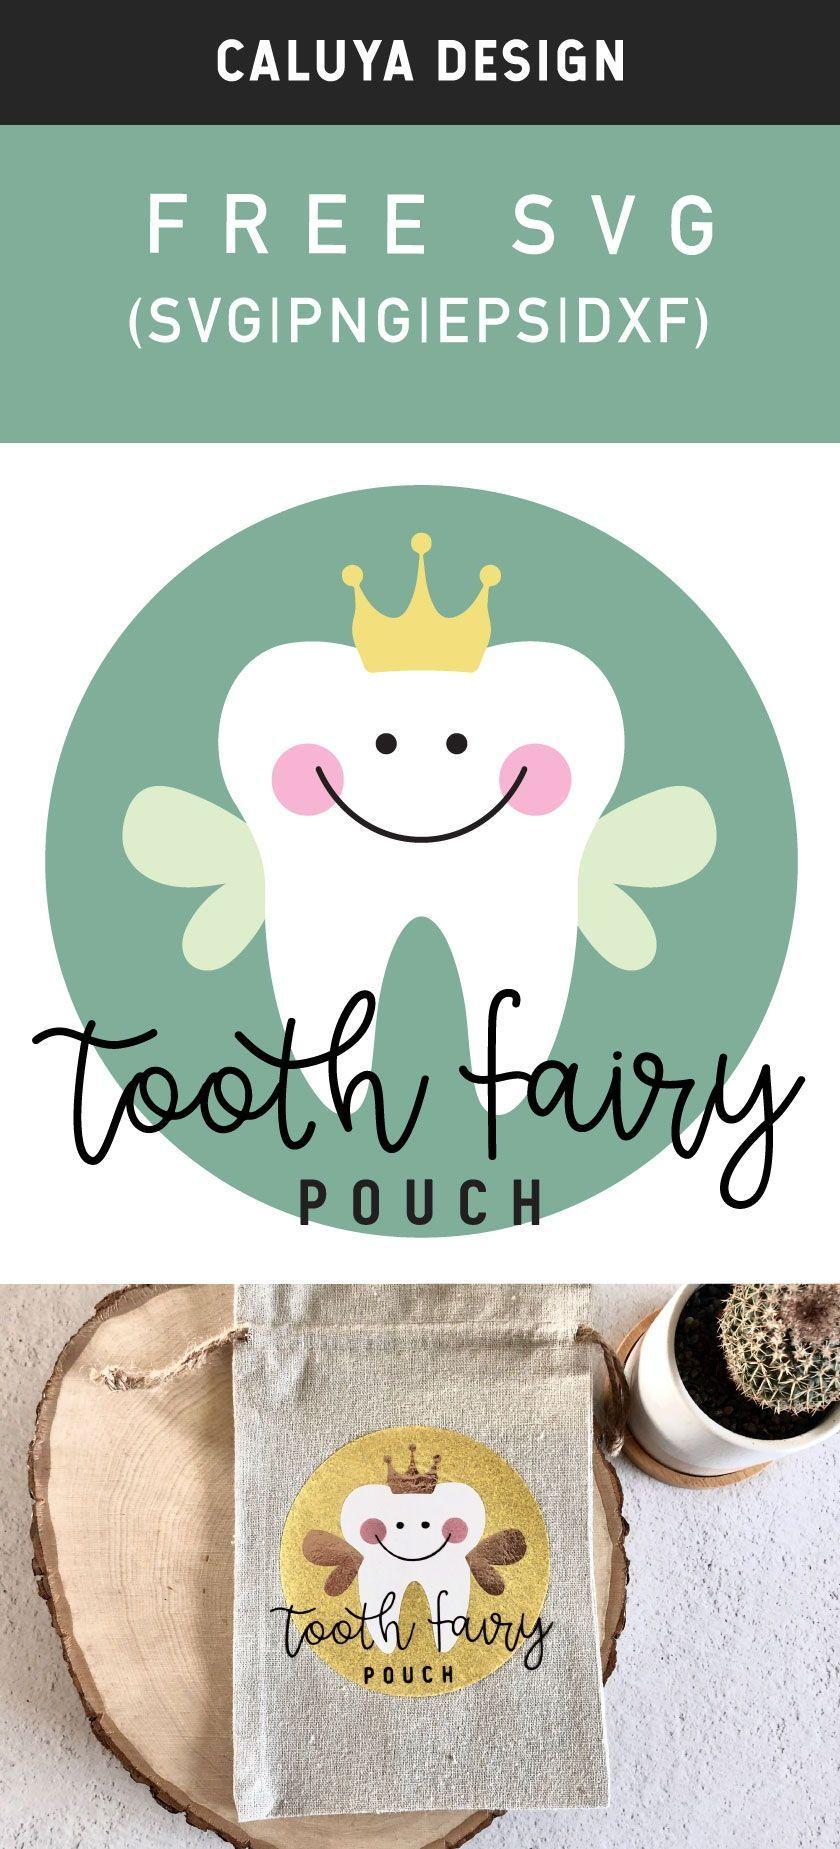 Free Tooth Fairy SVG, PNG, EPS & DXF by Caluya Des